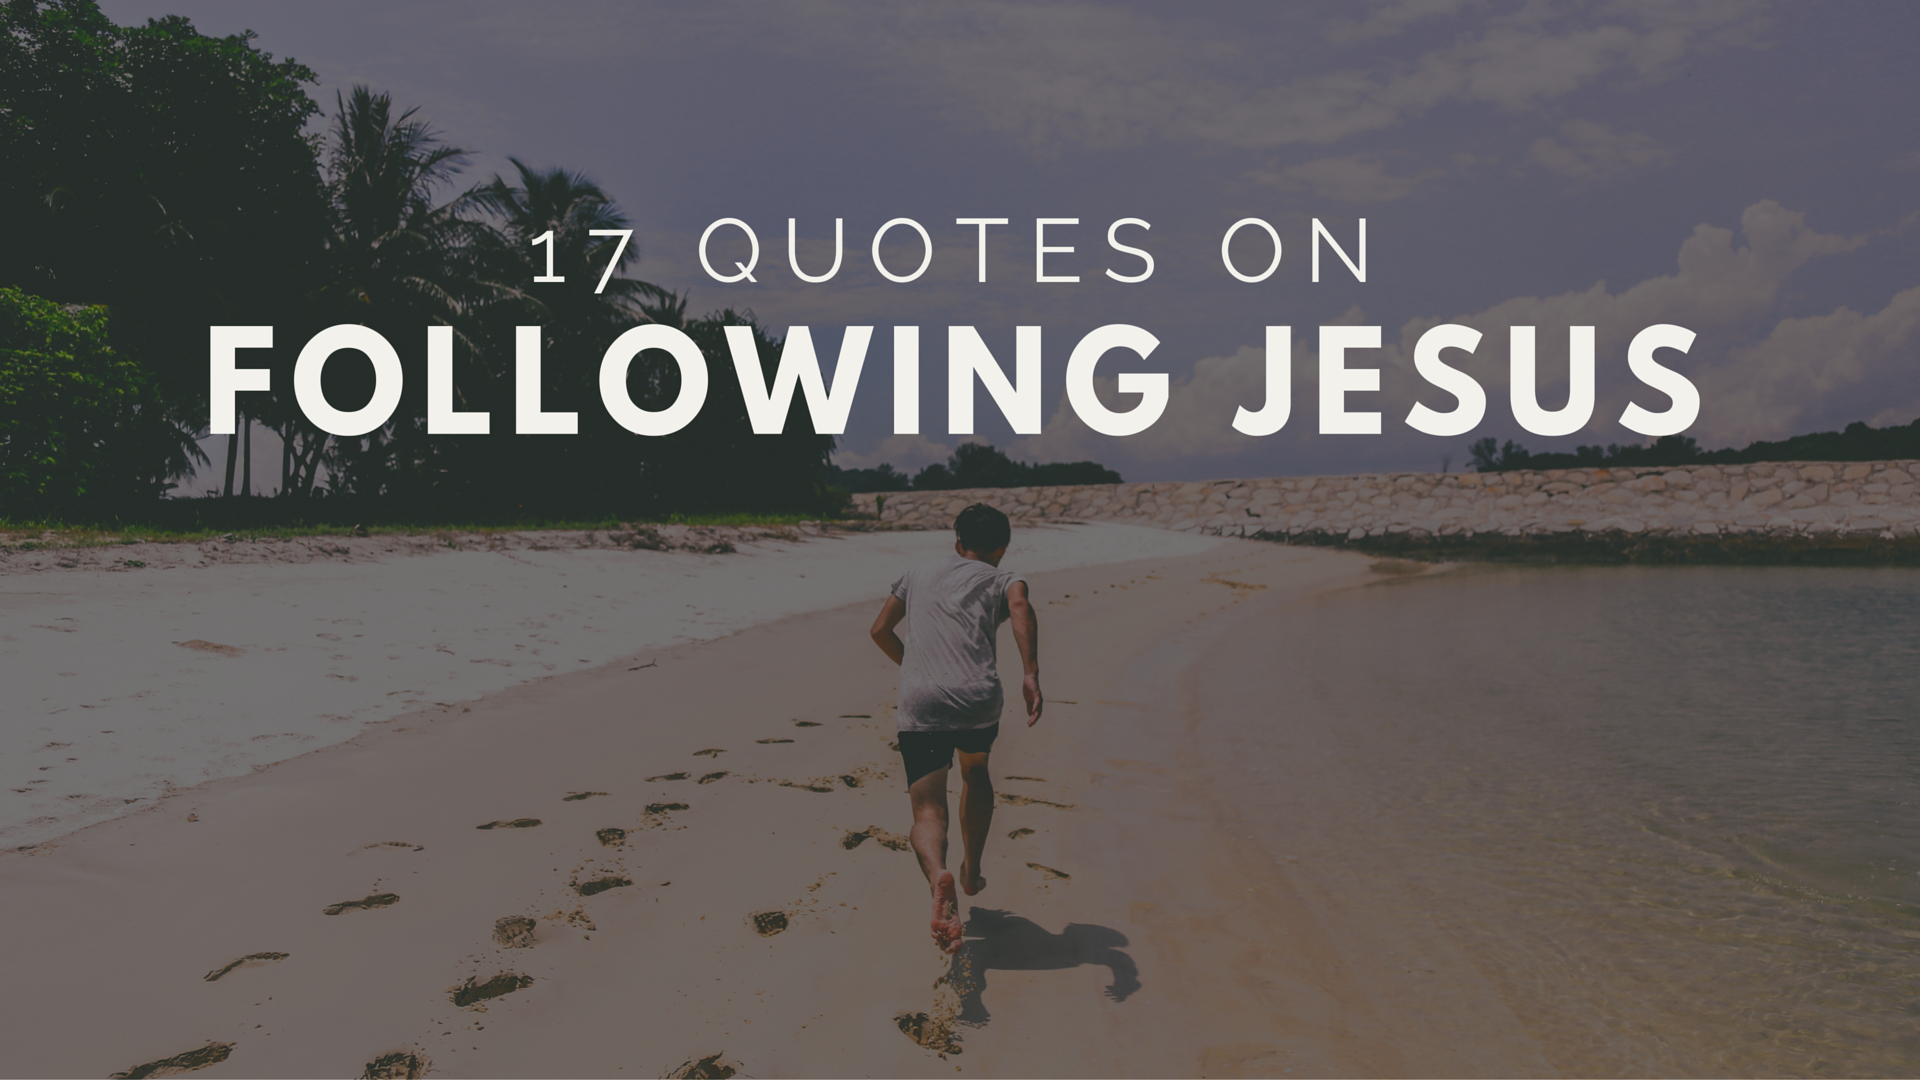 17 Quotes on Following Jesus